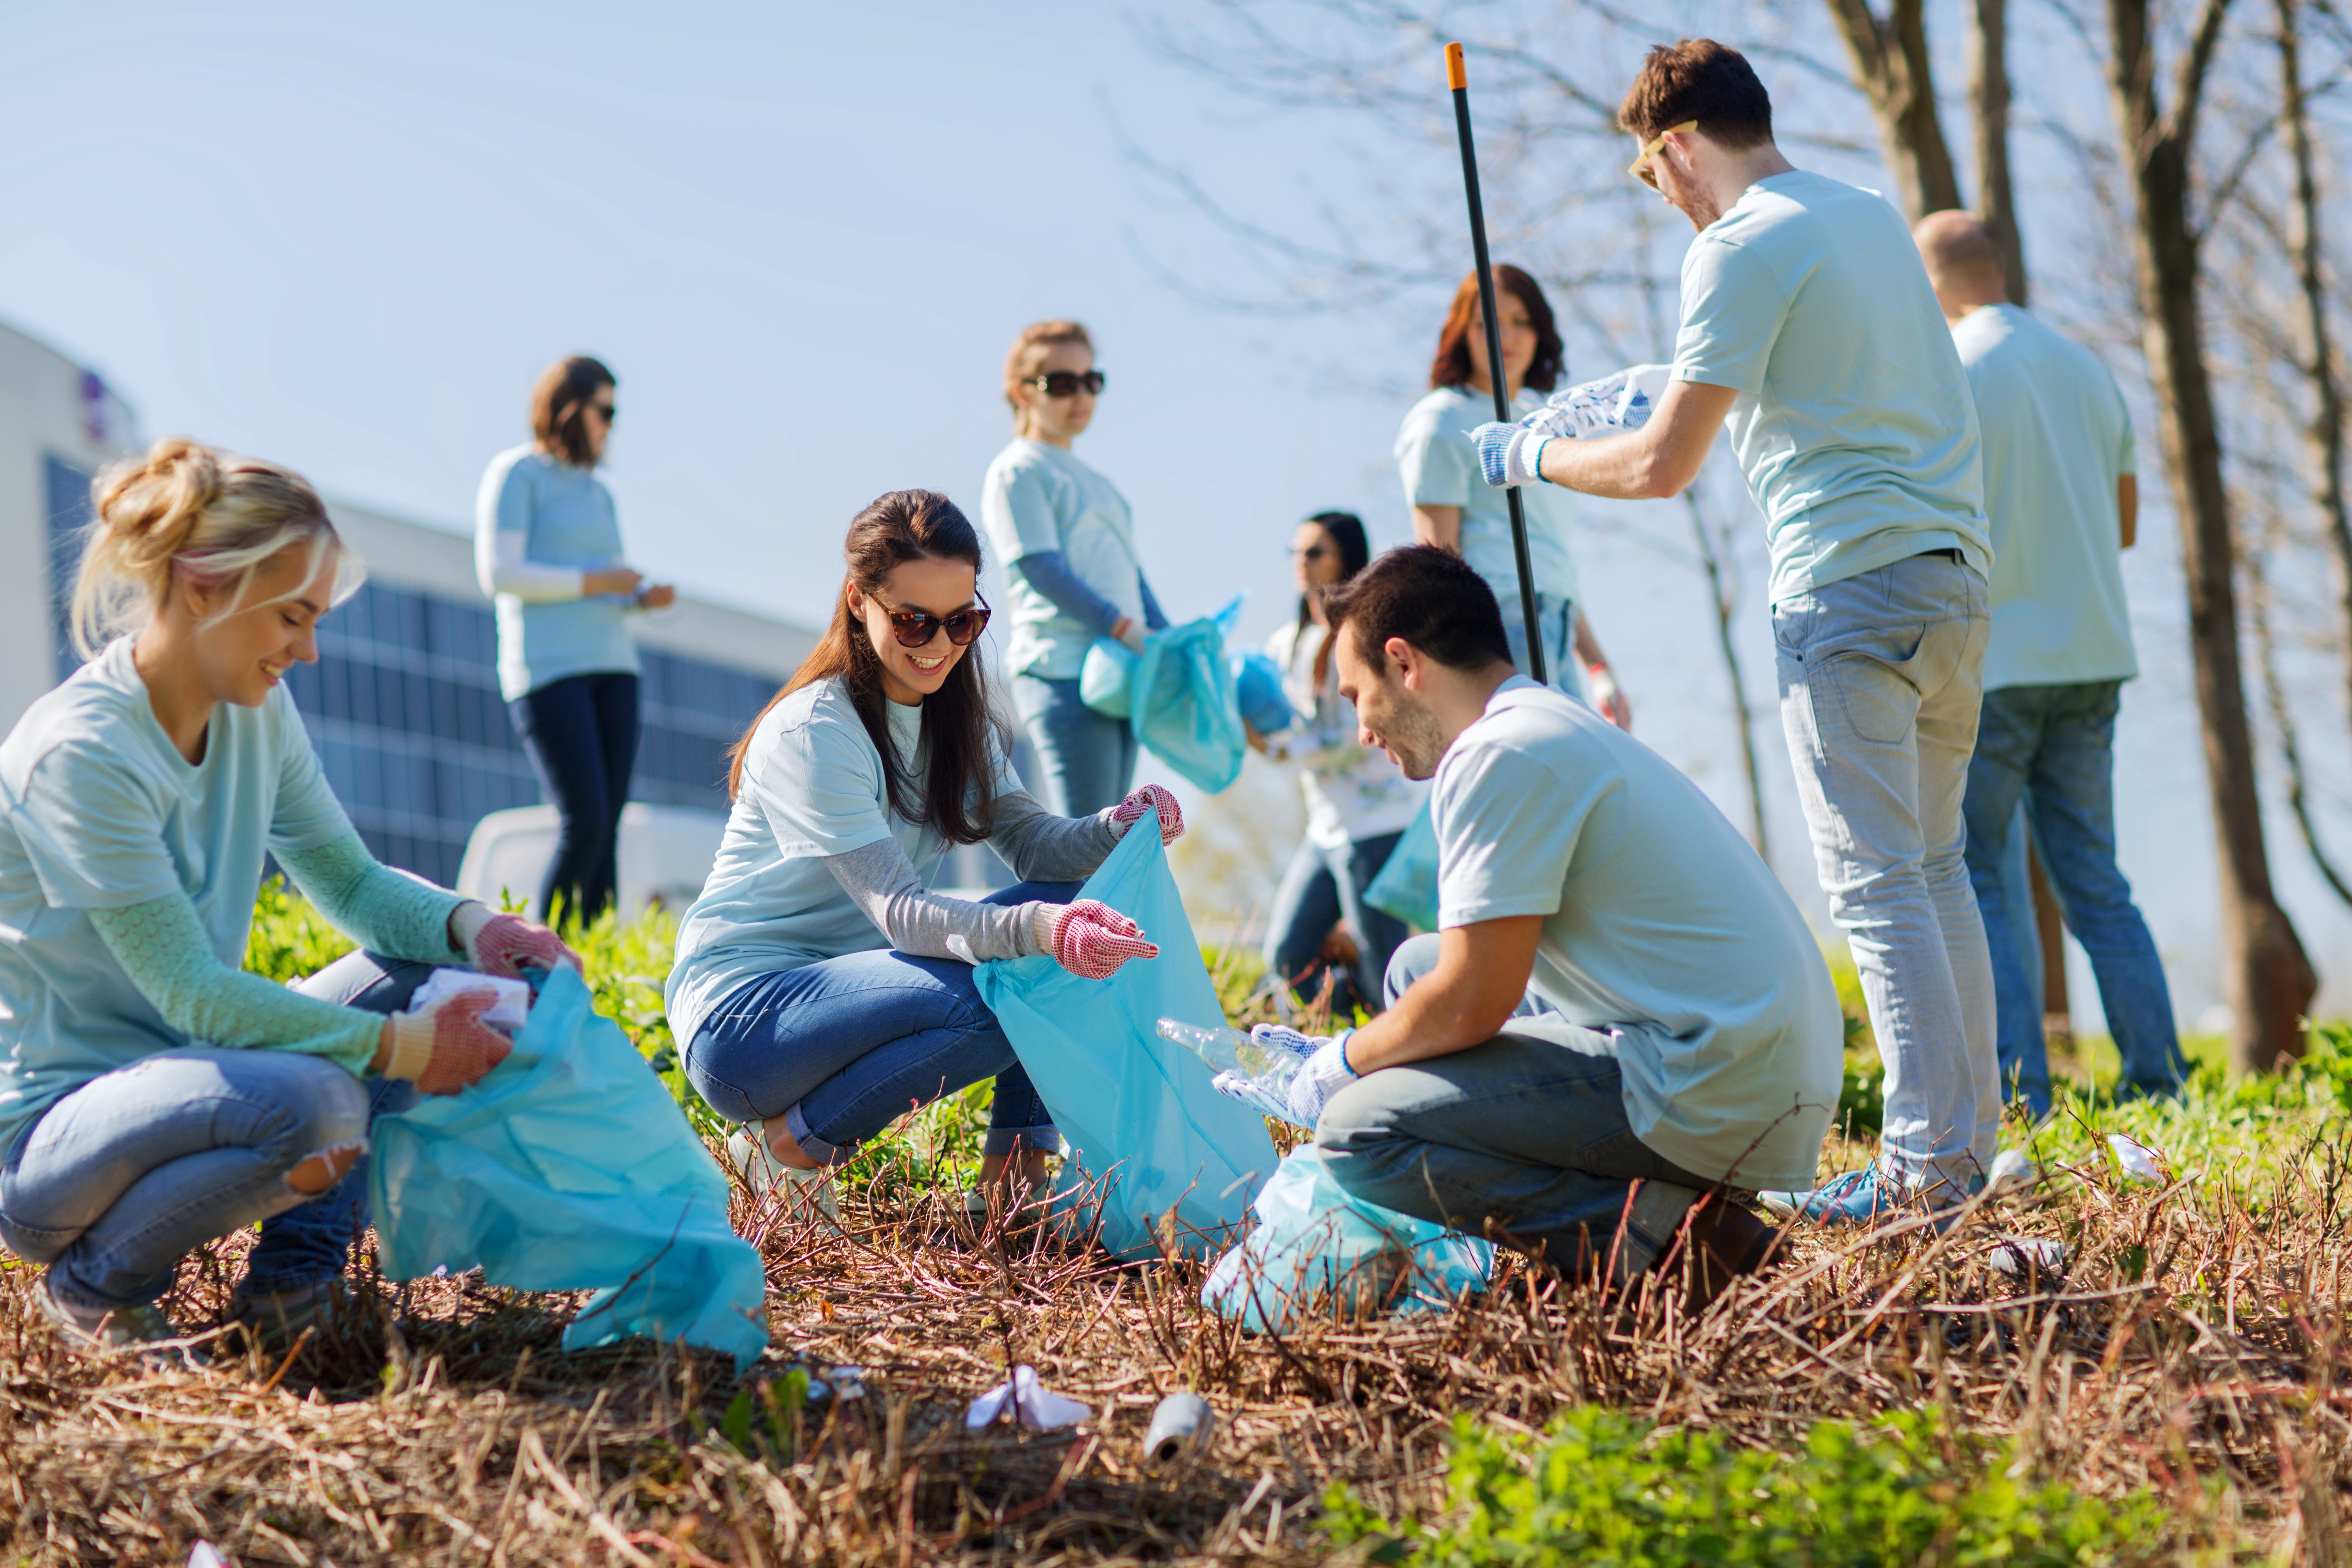 volunteers with garbage bags cleaning park area-1.jpg